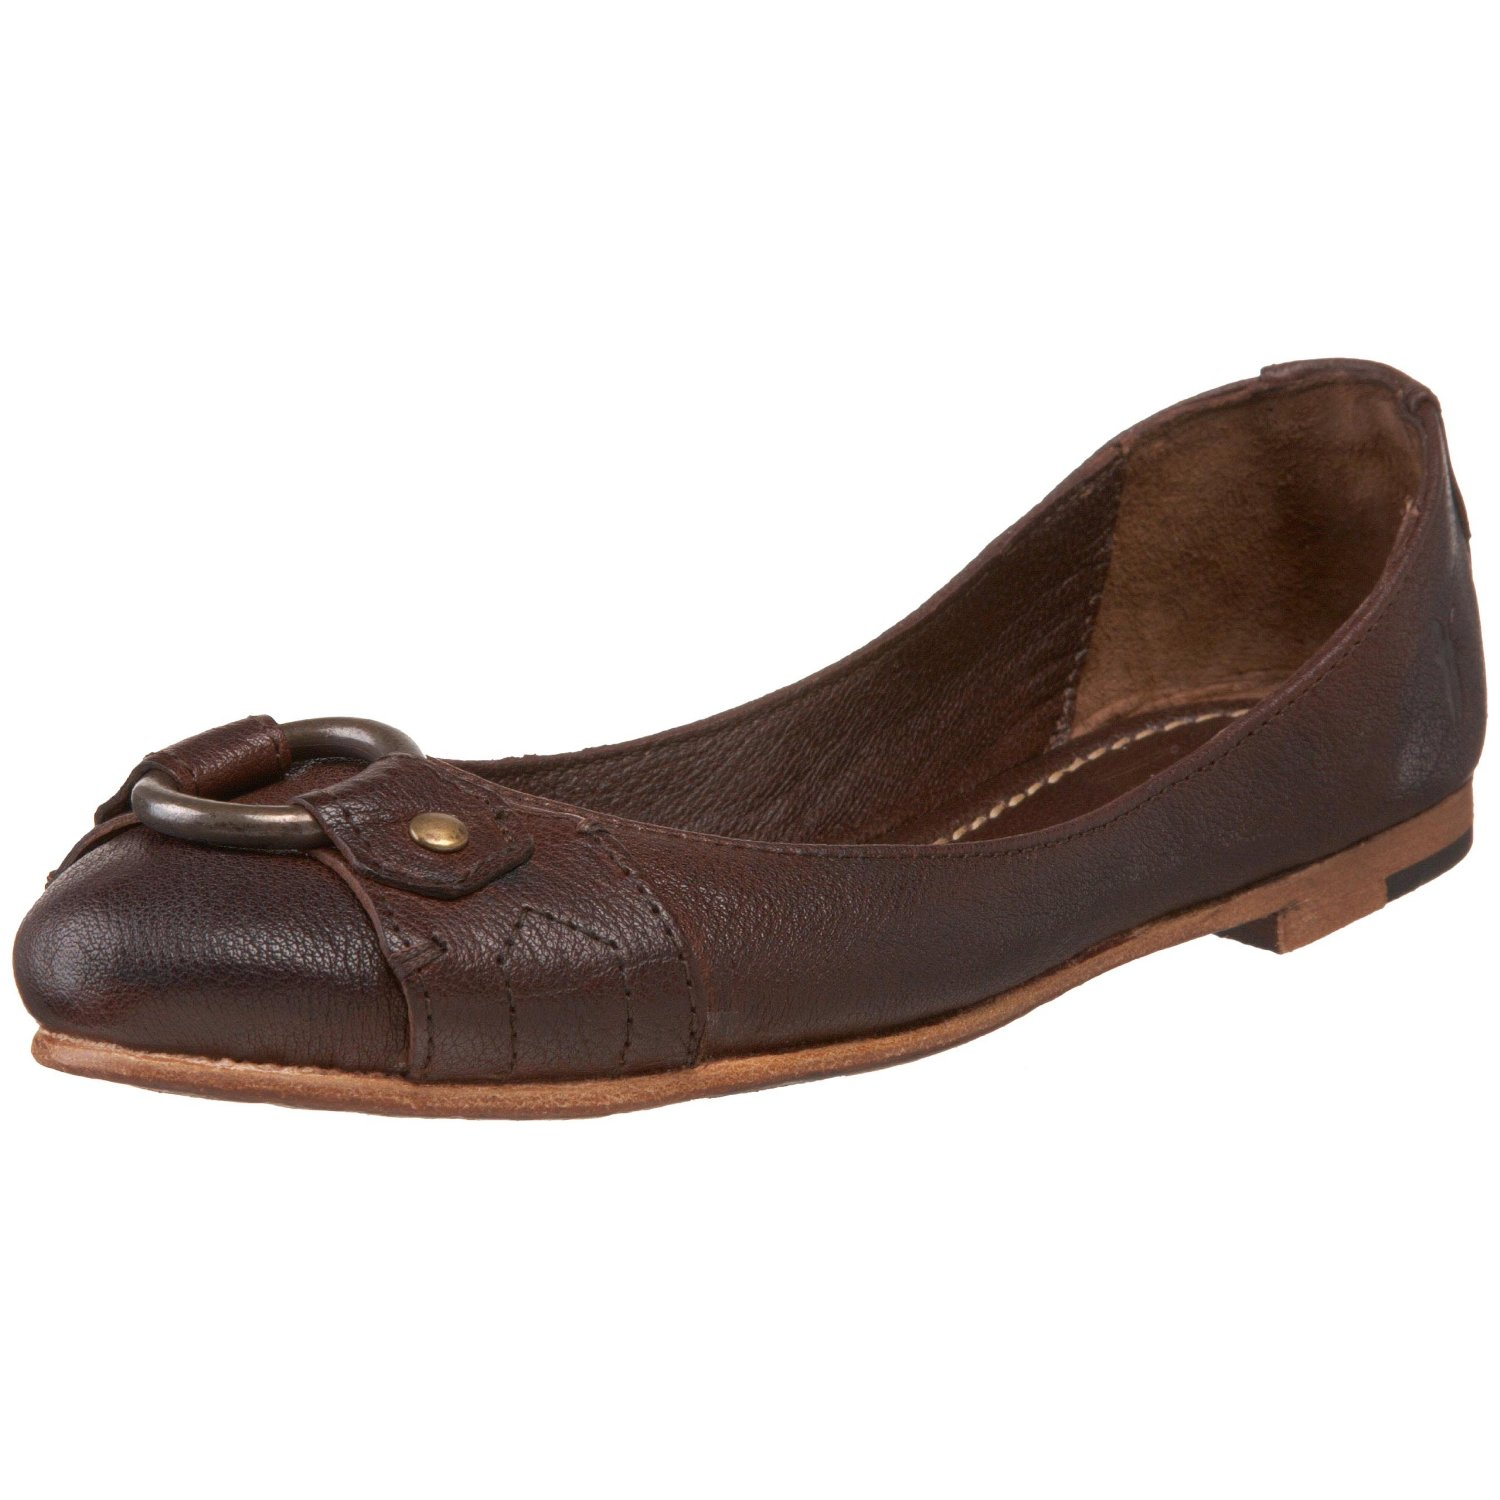 Brown Women's Flats: vip7fps.tk - Your Online Women's Shoes Store! Get 5% in rewards with Club O! Coupon Activated! Skip to main content FREE Shipping & Easy Returns* Search. Earn Rewards with Overstock. Missed Rewards. LFL by Lust for Life Women's Tinker Ballet Flat.